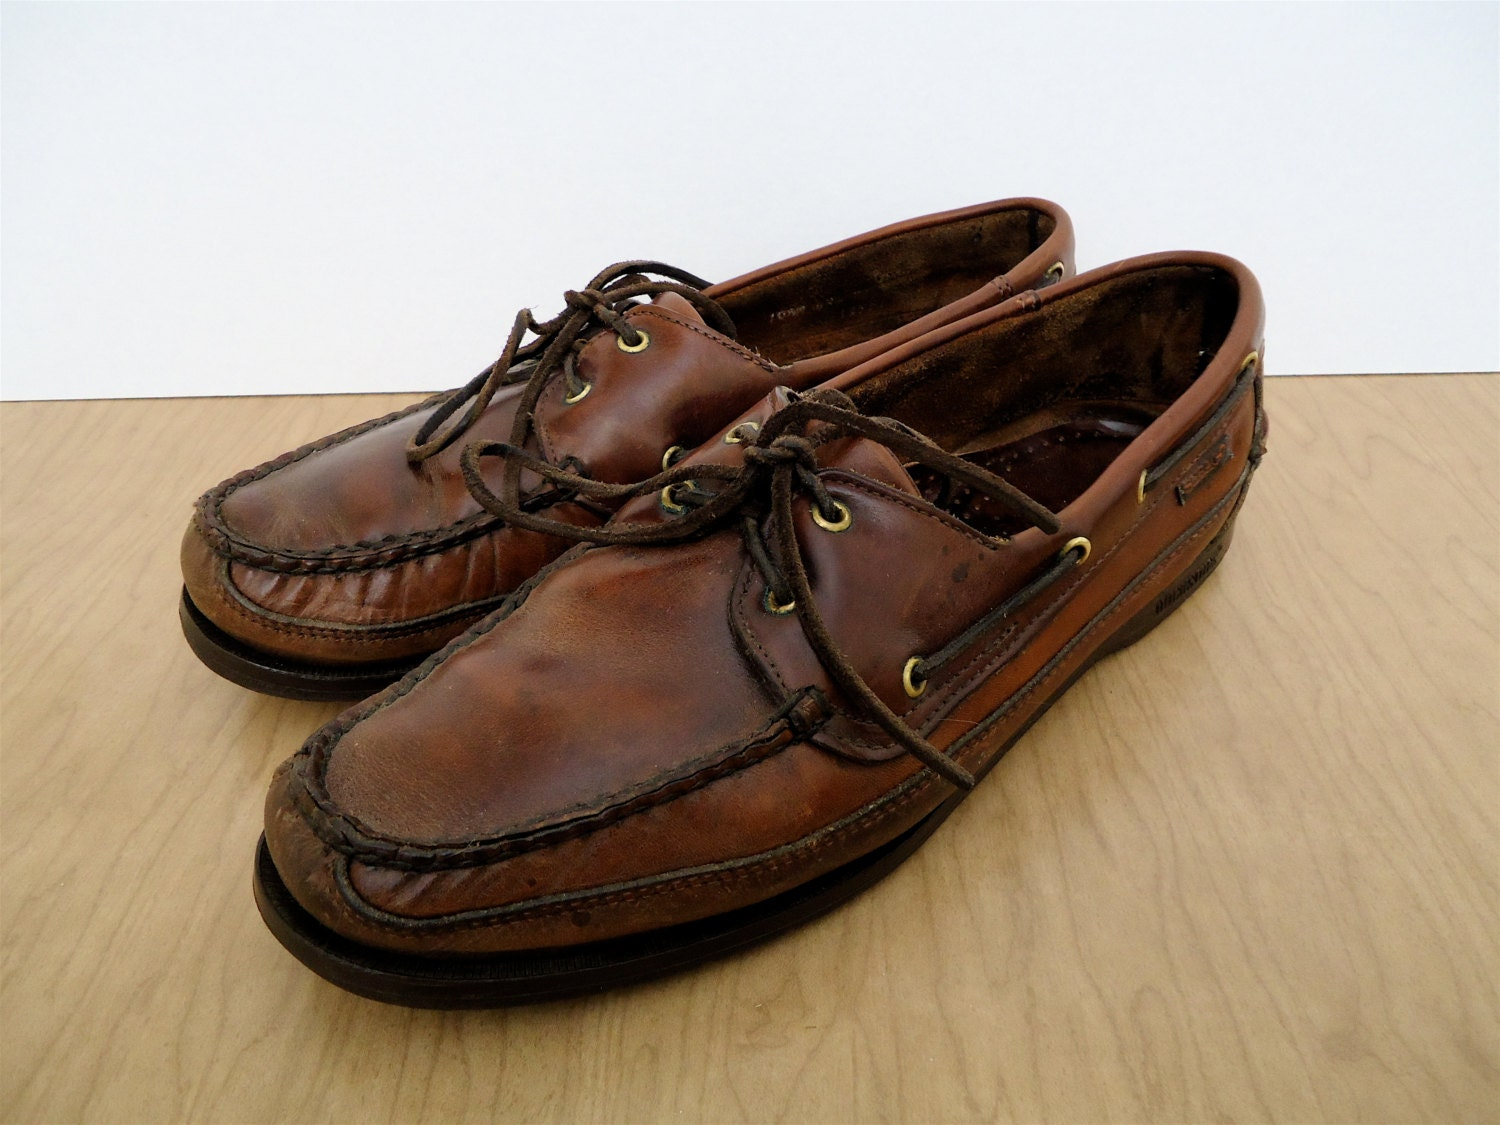 Sebago Boat Shoes / preppy brown leather moccasins / vintage